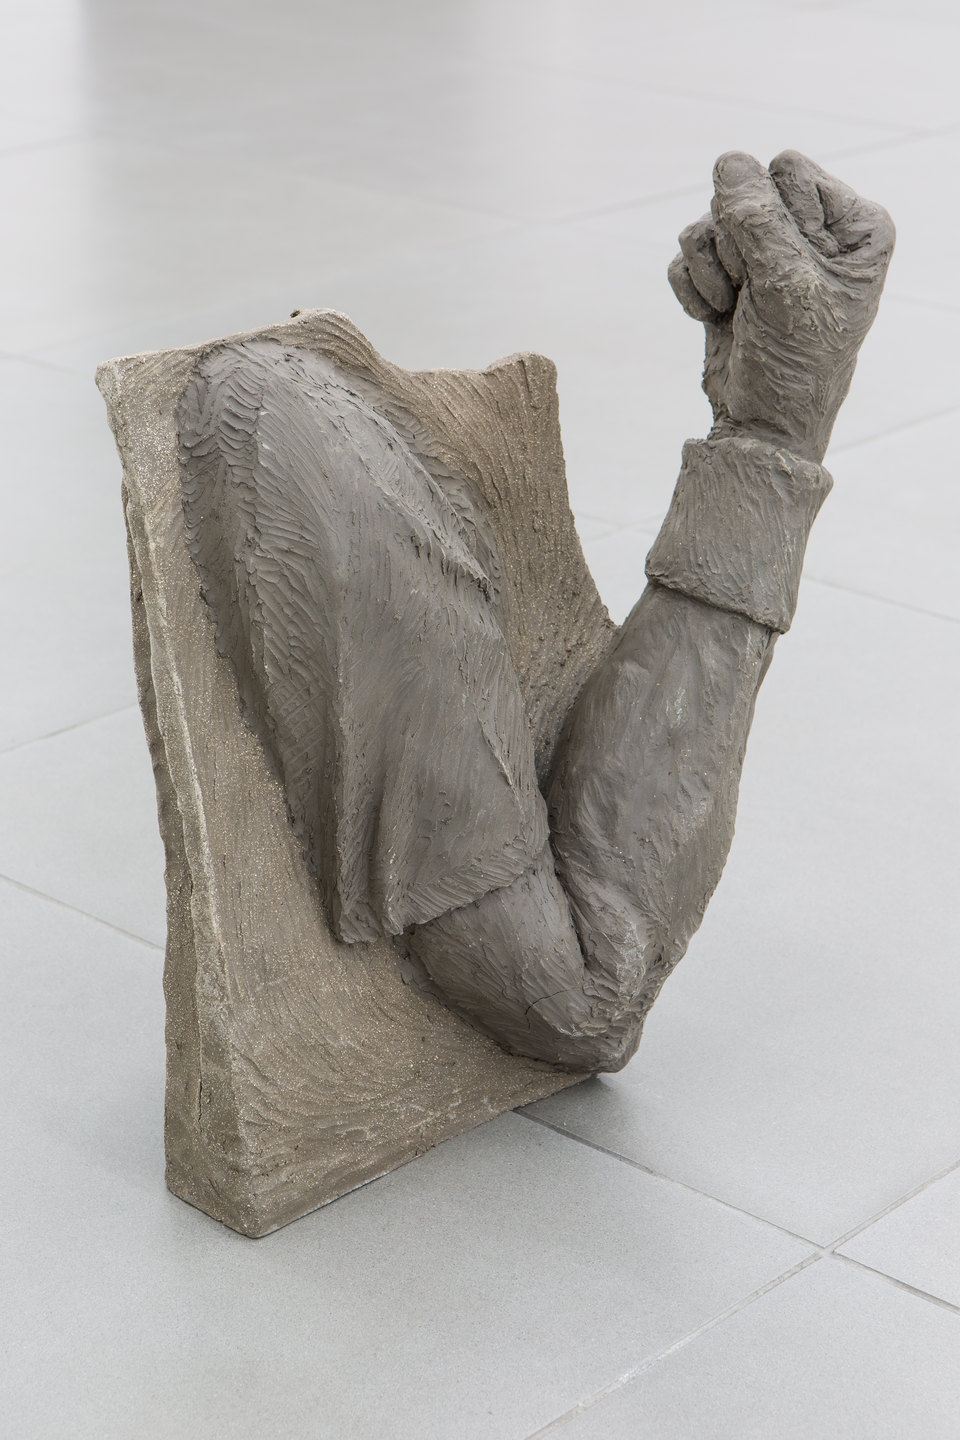 Beth Collar, 'Fist Pump (Rafa, Muzza, the Joker)', 2018, No, No, No, No, 2018, Cell Project Space